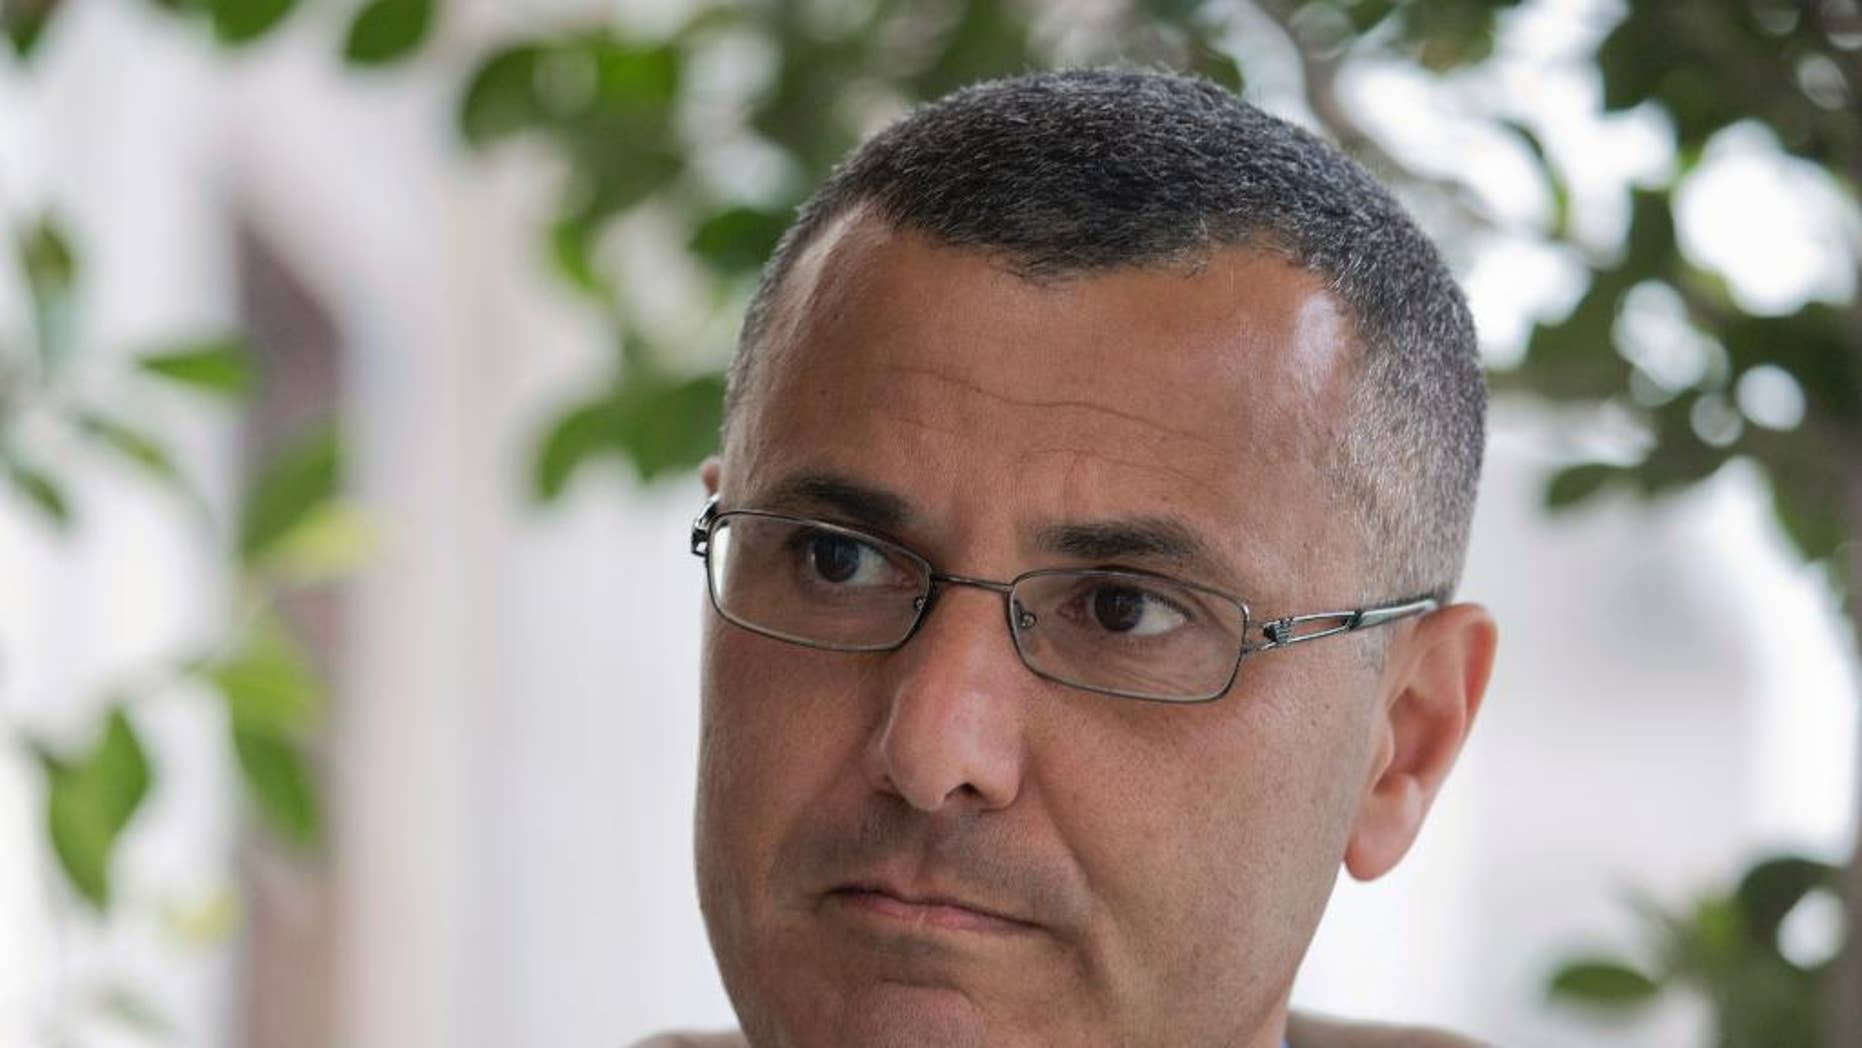 Omar Barghouti listens during an interview with the Associated Press in the West Bank city of Ramallah, Tuesday, May 10, 2016. Barghouti, a Qatari-born Palestinian who is married to an Israeli woman and leader of the international boycott movement against Israel, on Tuesday accused Israeli authorities of imposing a travel ban on him as retribution for his political activities. (AP Photo/Nasser Nasser)